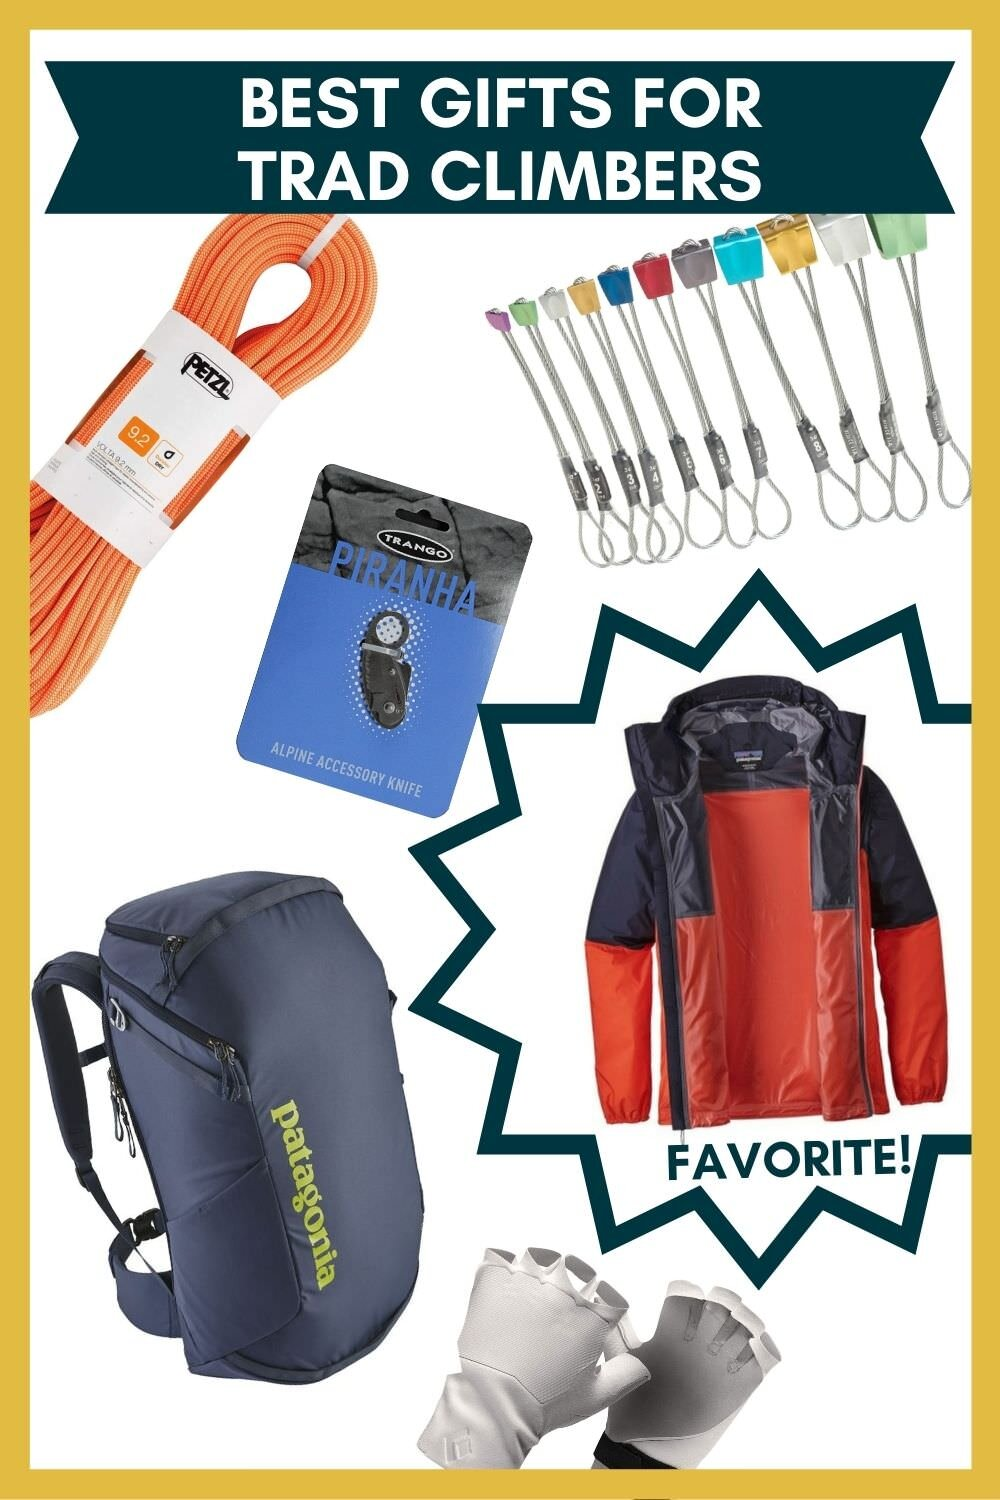 Best gift ideas for trad climbers.